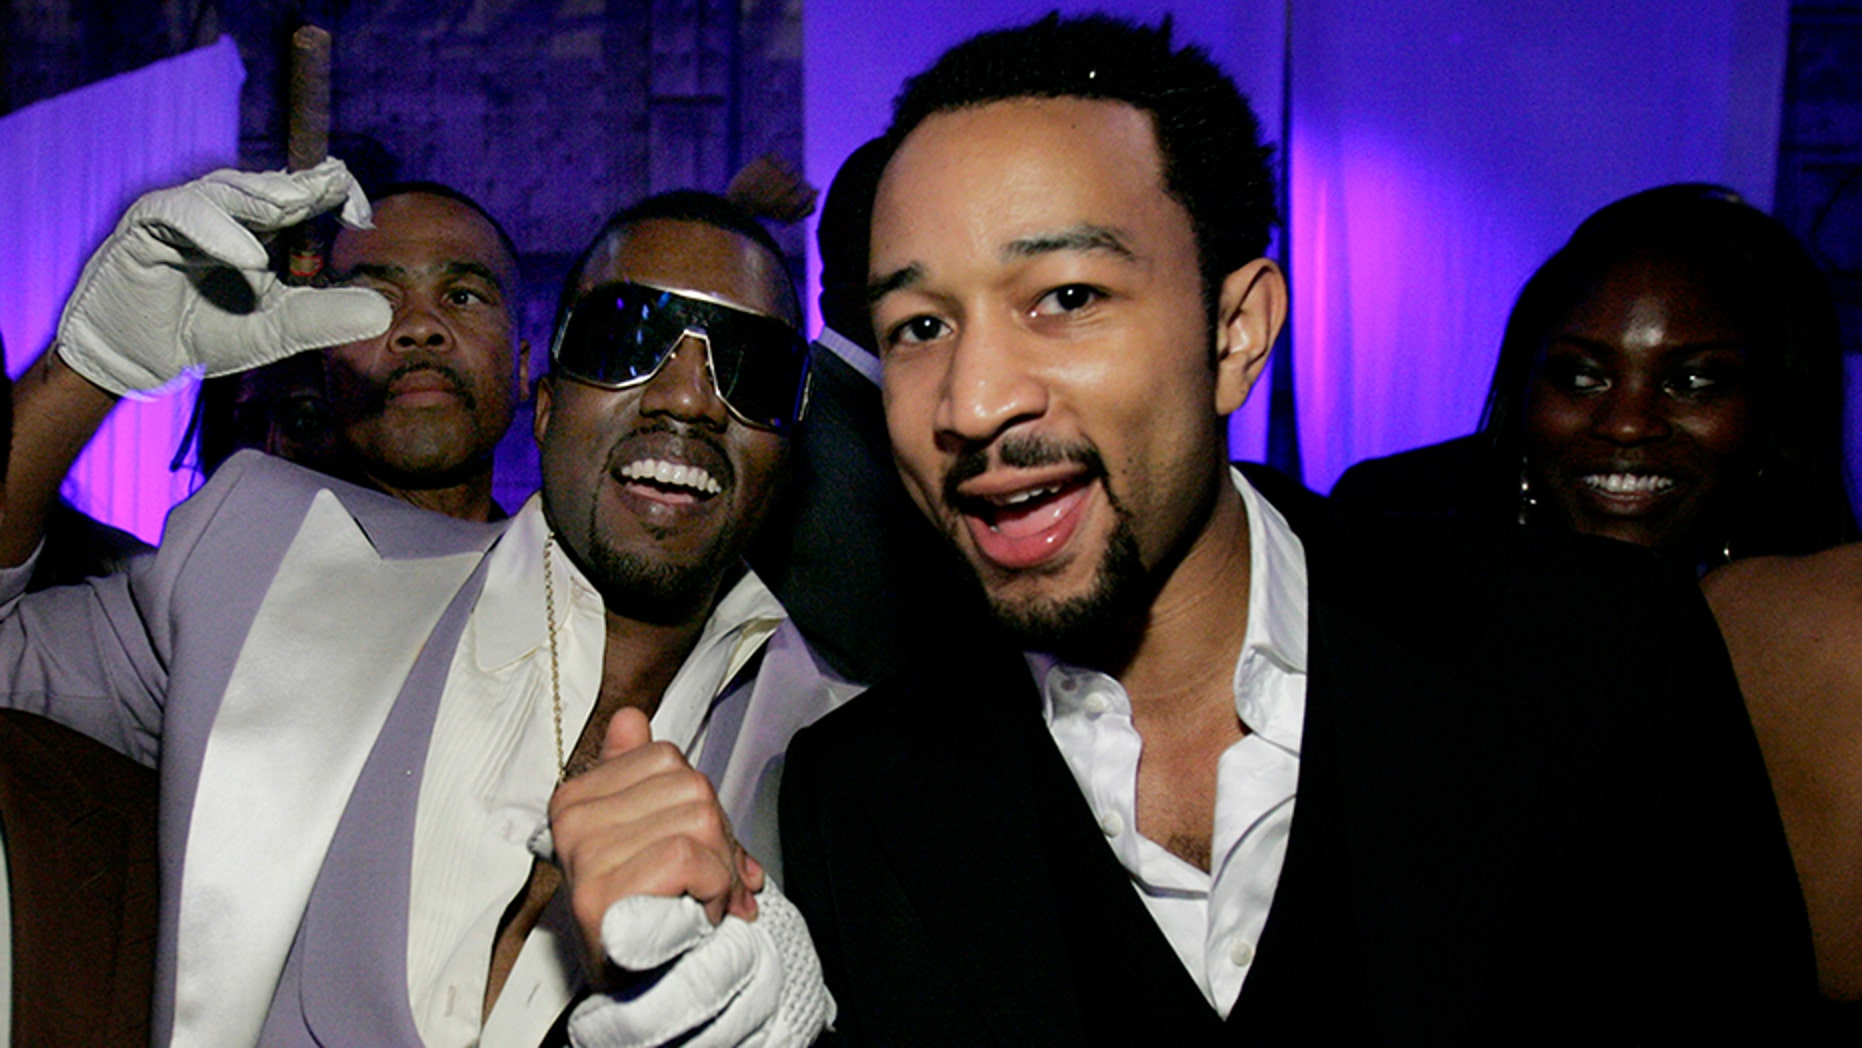 Kanye West accused John Legend of trying to manipulate his free thought.